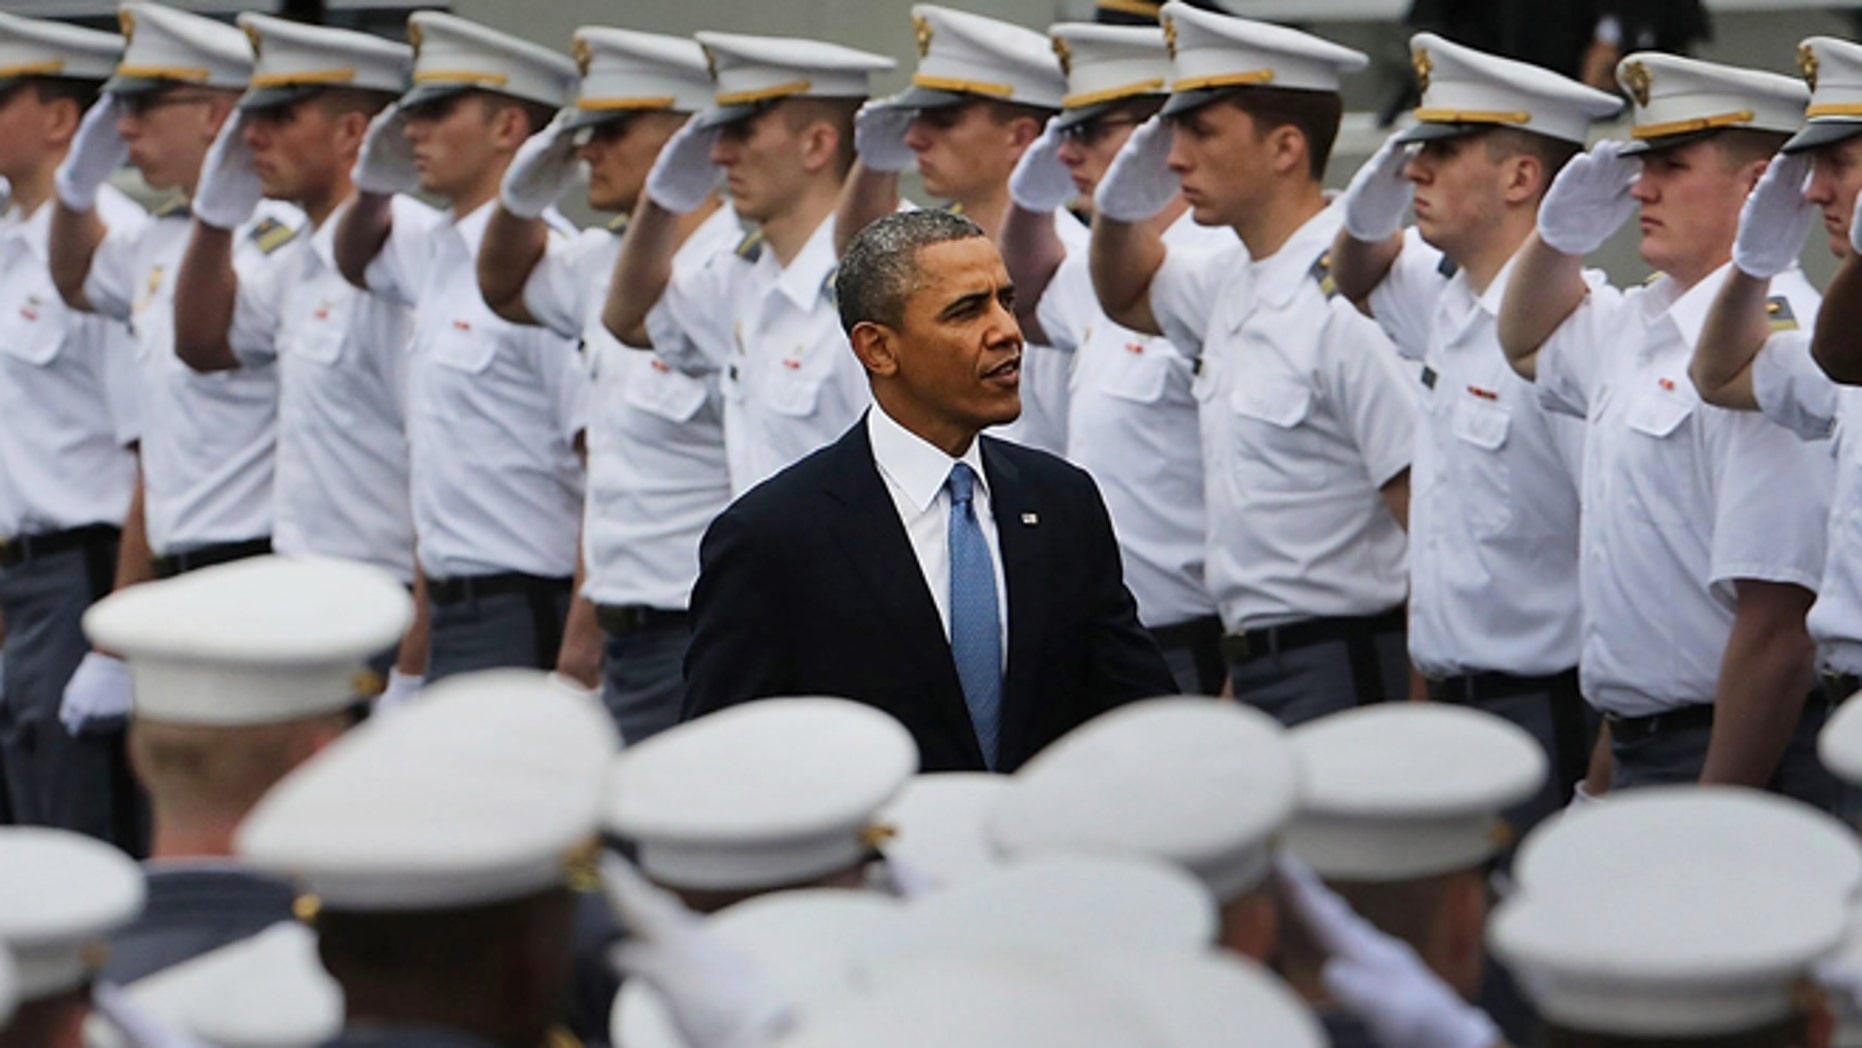 President Obama at the graduation ceremony at the U.S. Military Academy on May 28, 2014 in West Point, New York.